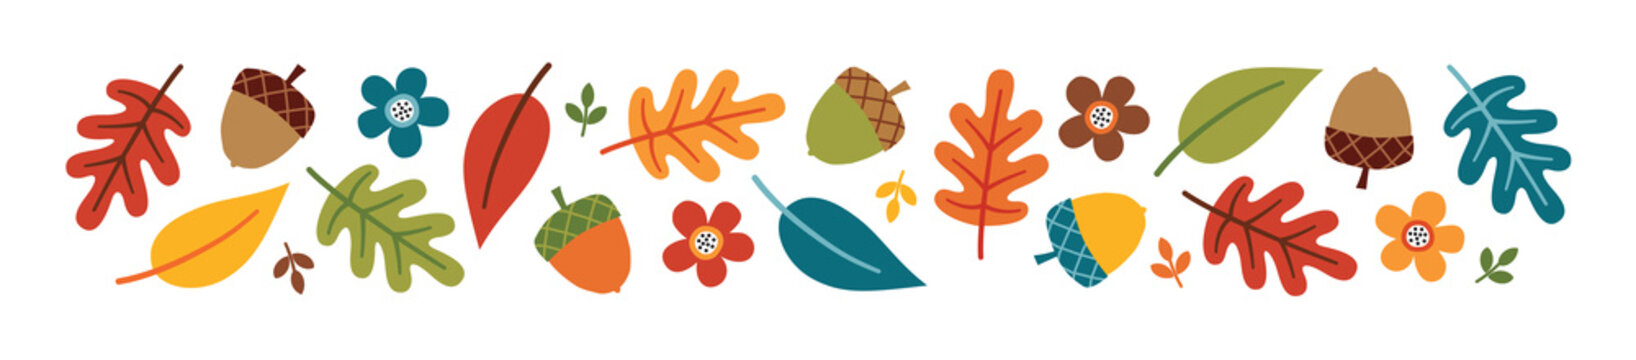 Vector autumn or fall banner with colorful autumn leaves, acorns and flowers, isolated on white. Cute kawaii border with seasonal elements in flat style for Thanksgiving, web or print advertising.